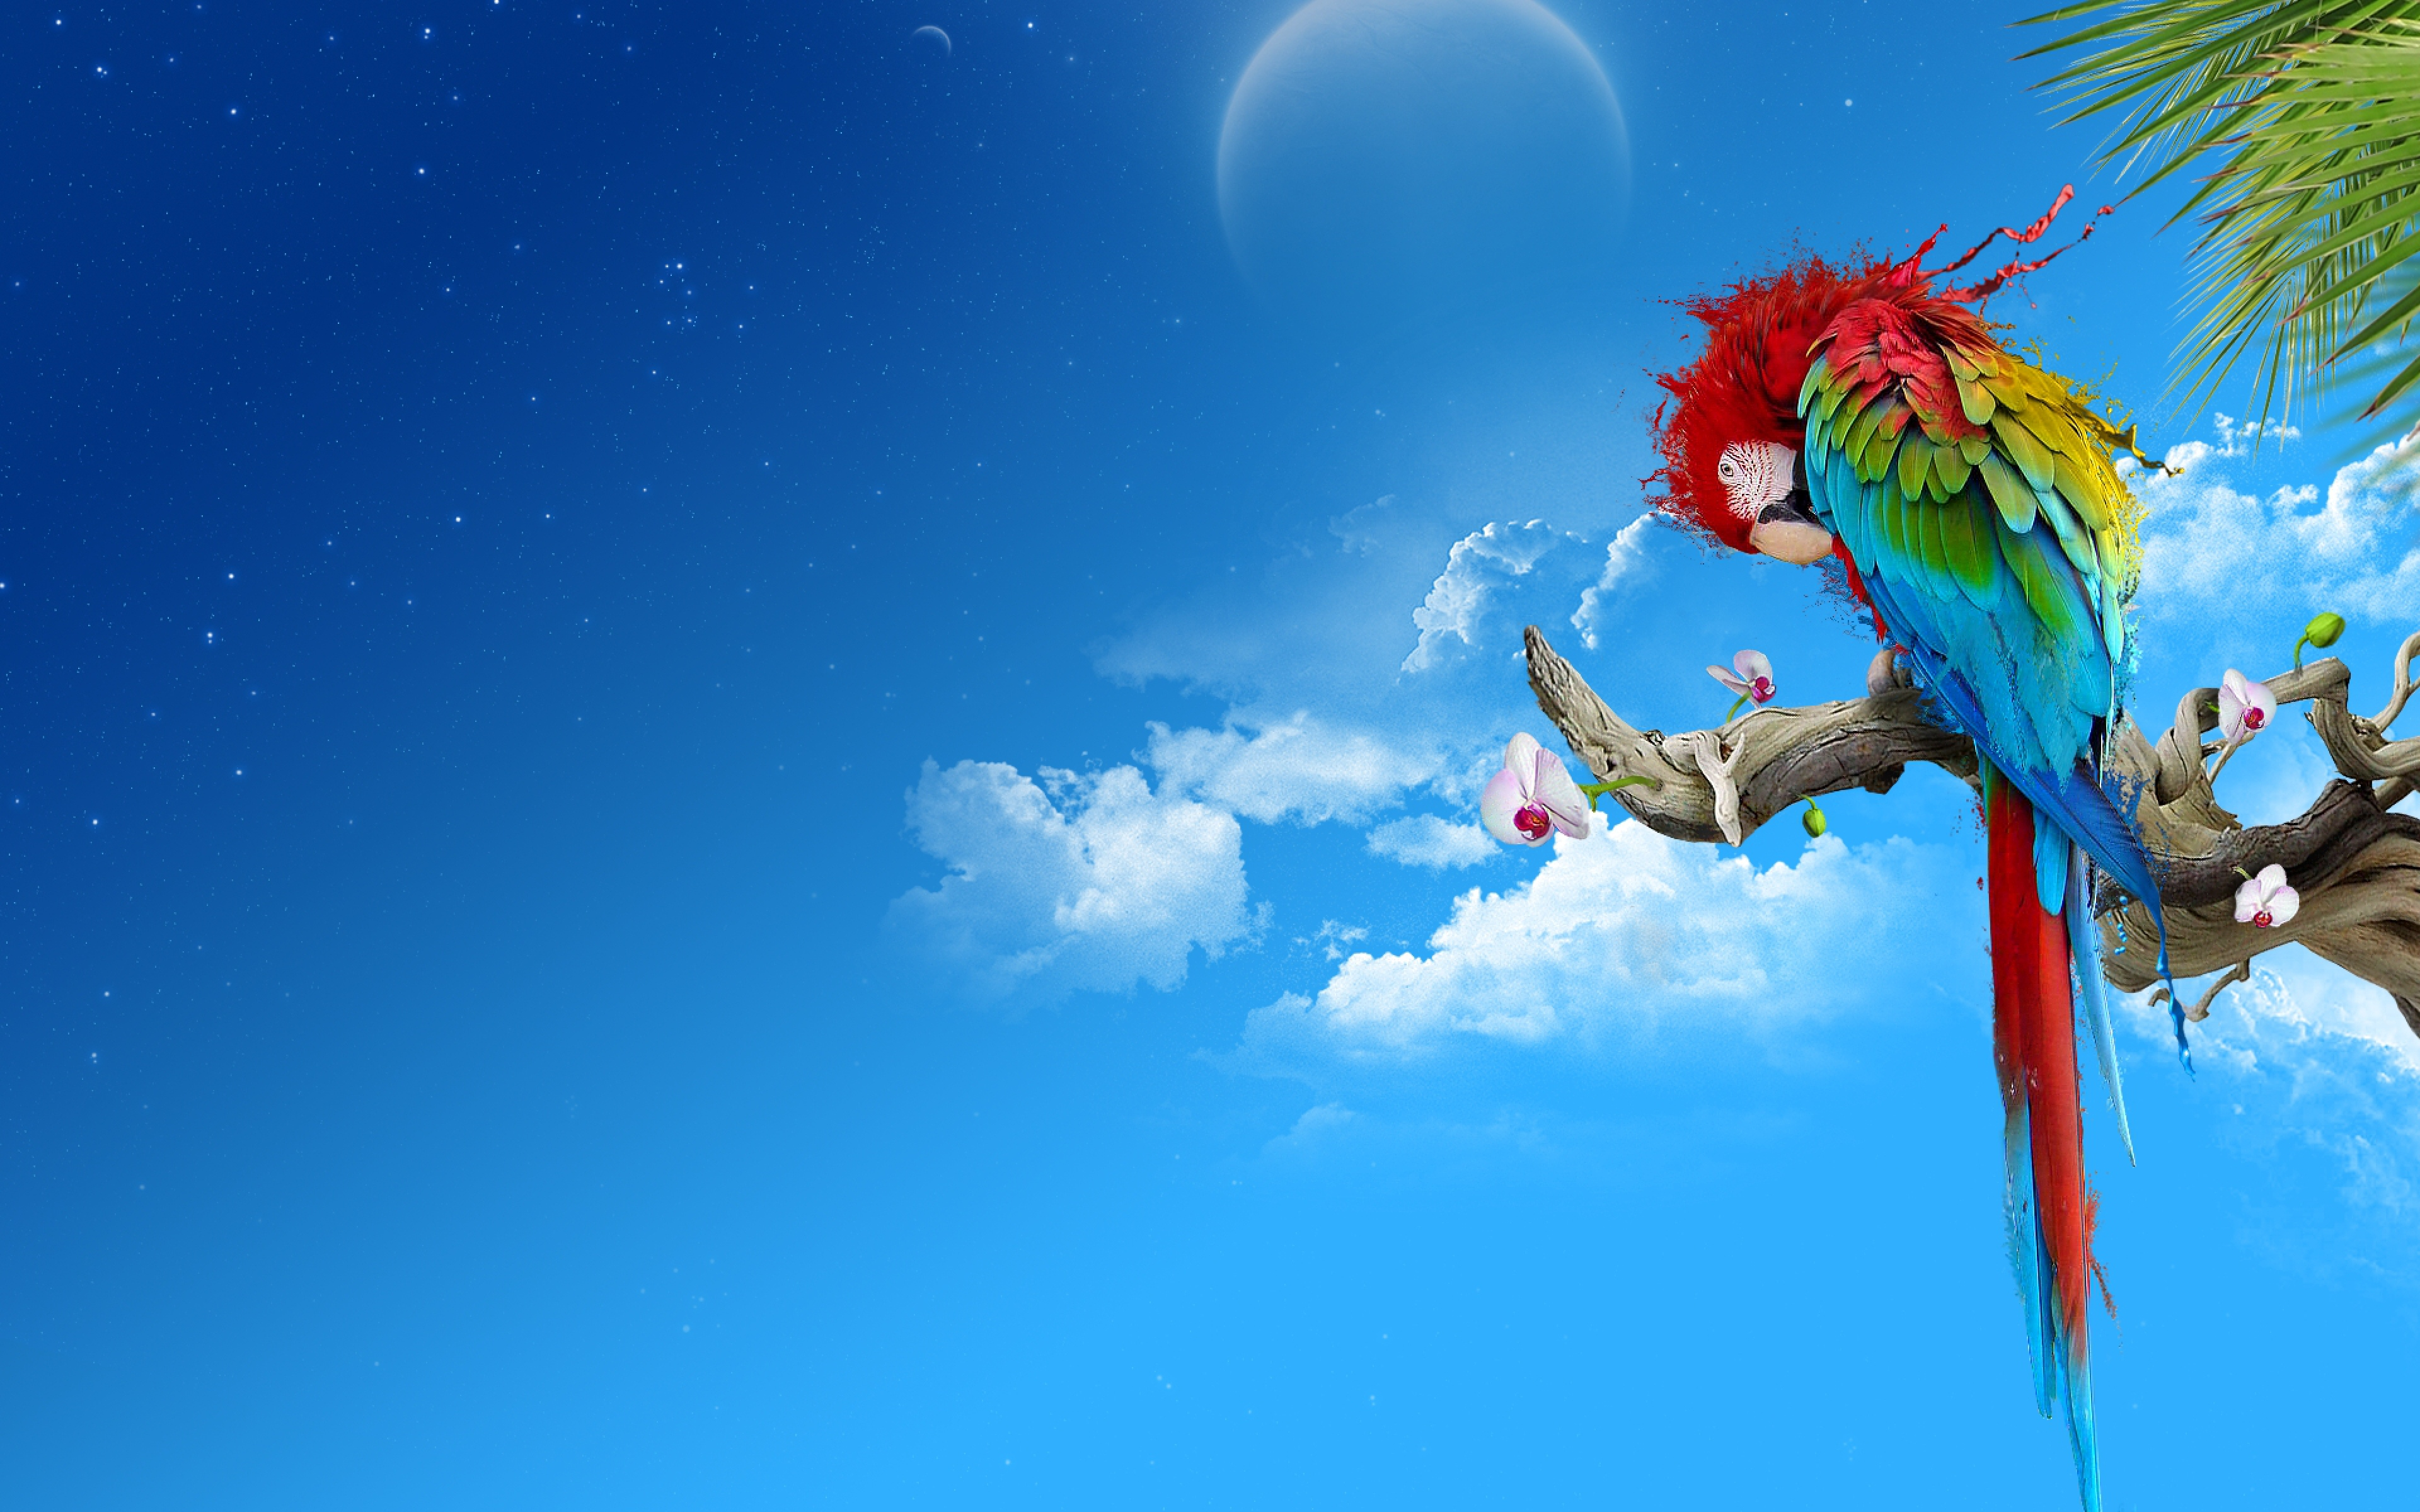 Download Wallpaper 3840x2400 parrot colorful feathers thread sit 3840x2400